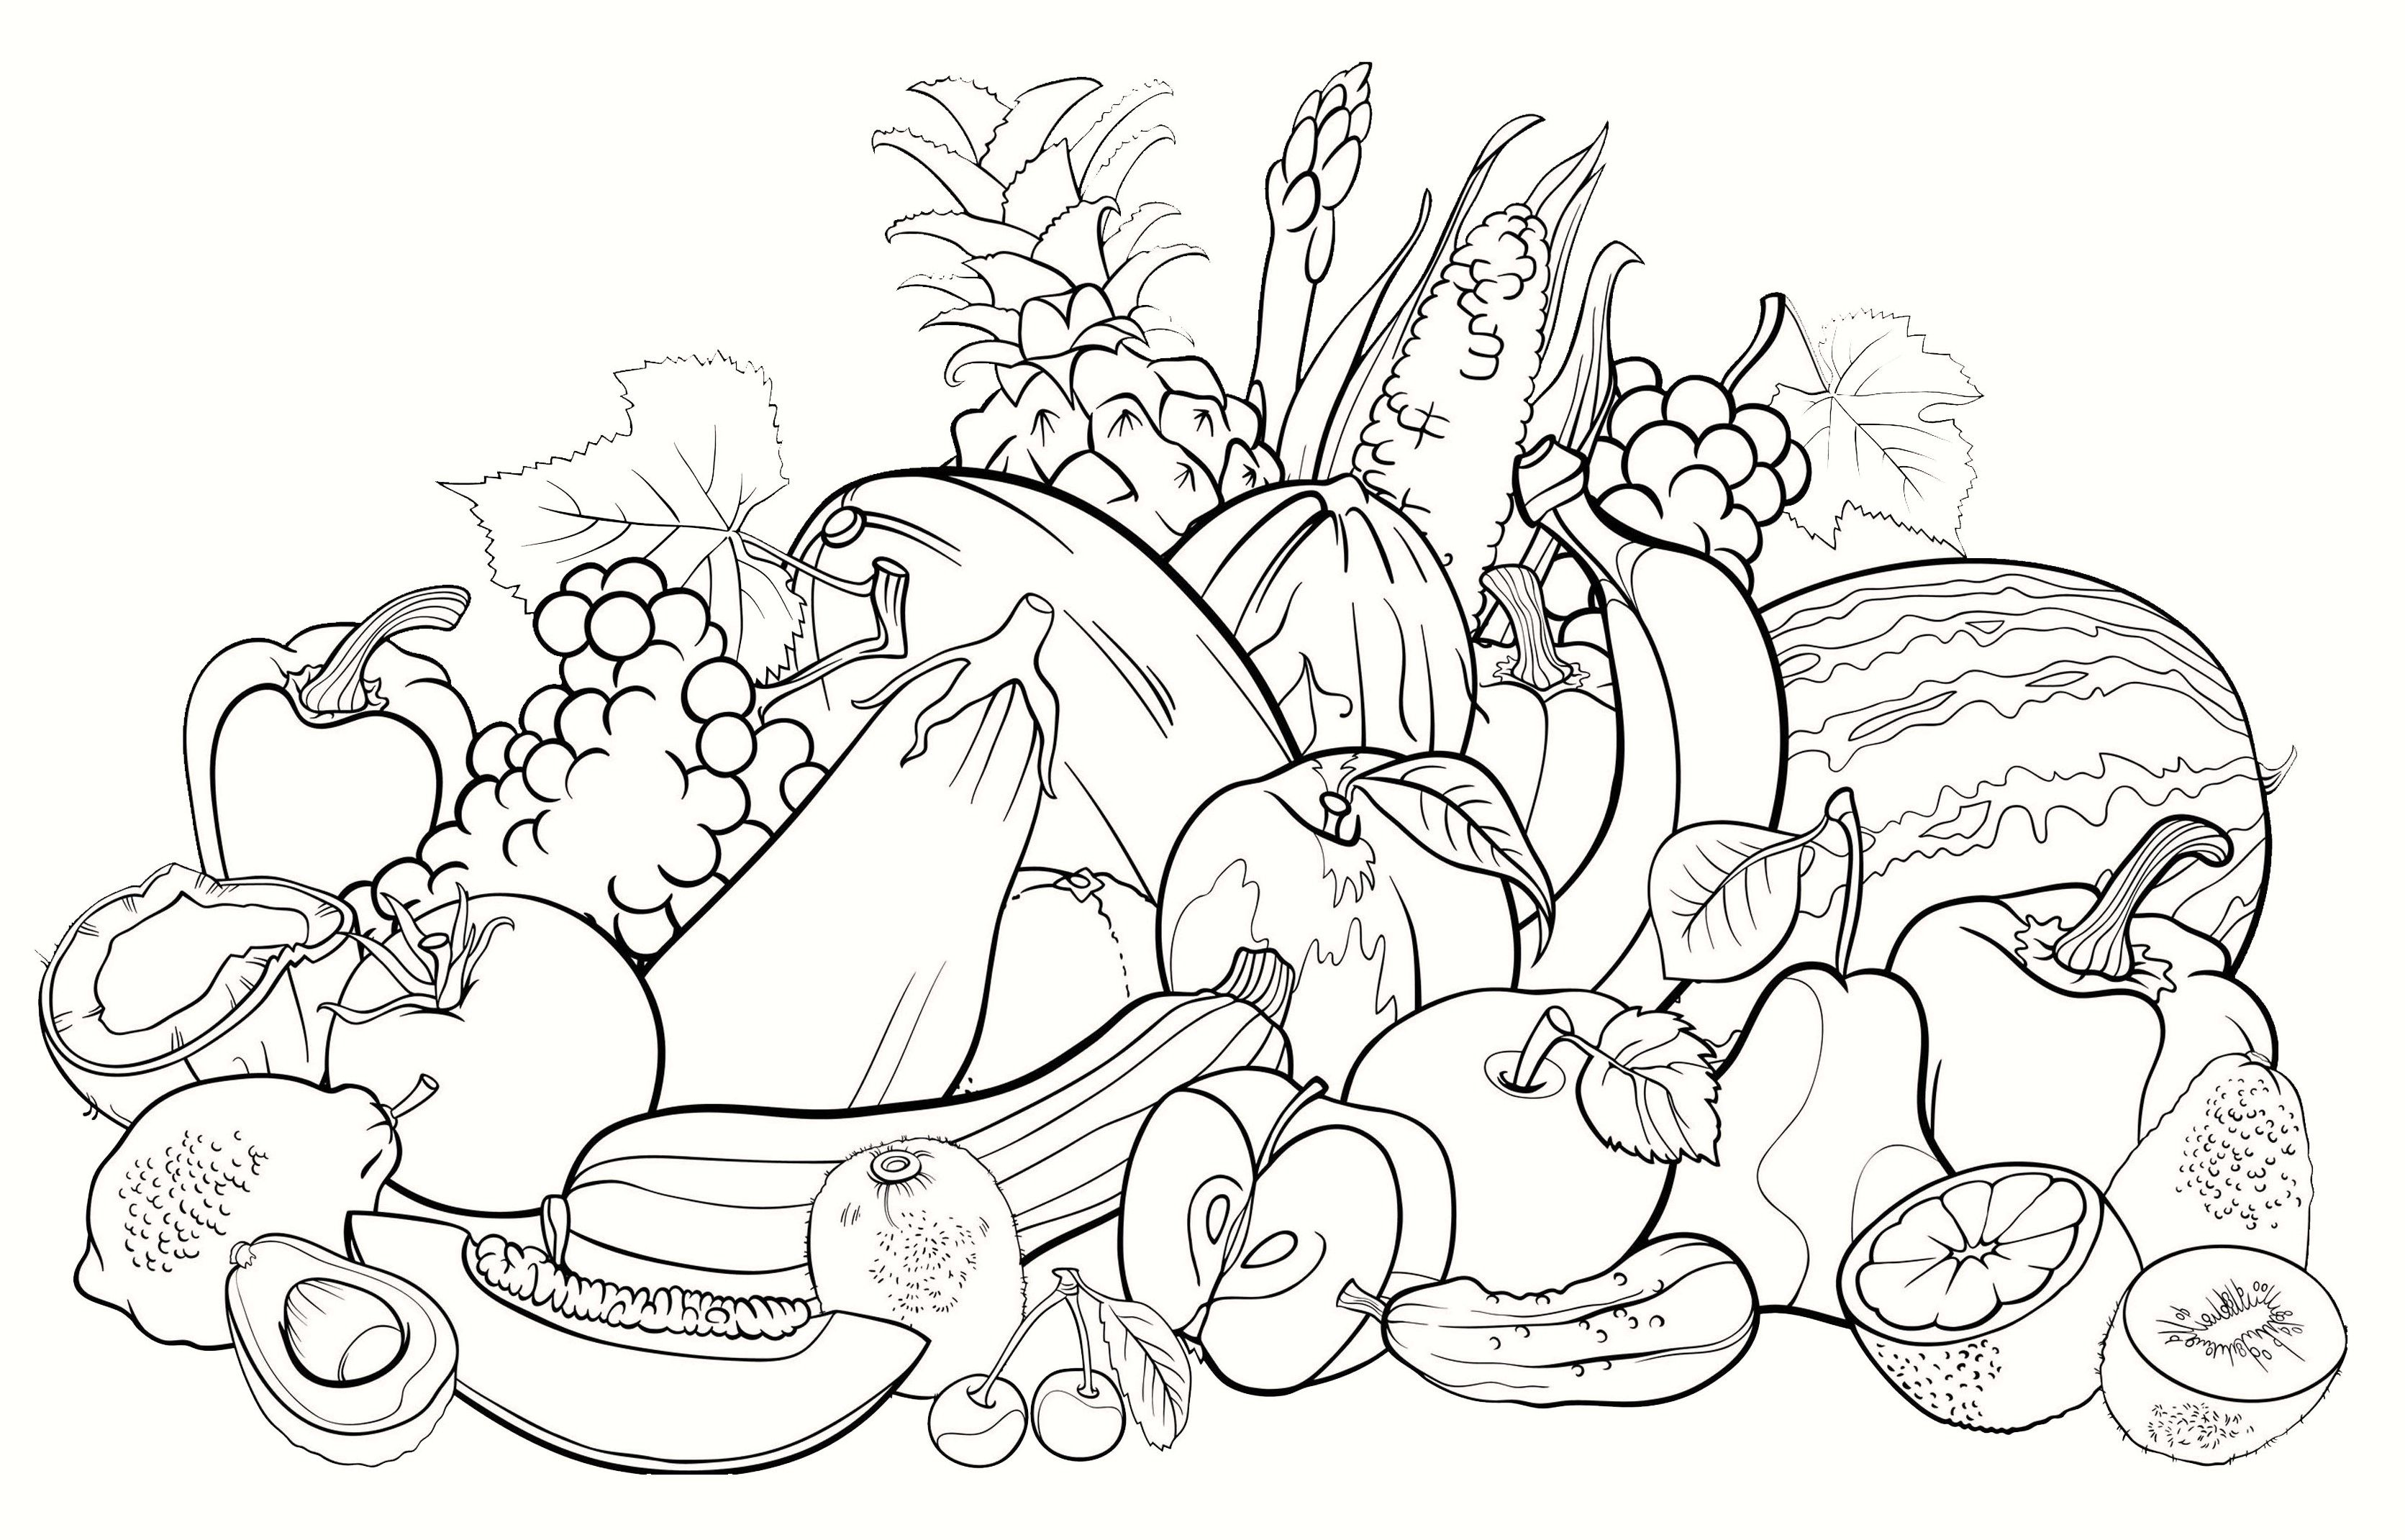 Pin By Mihaela Ferentz On Fruits And Their Name Coloring Pages Fruit Coloring Pages Vegetable Coloring Pages Coloring Books